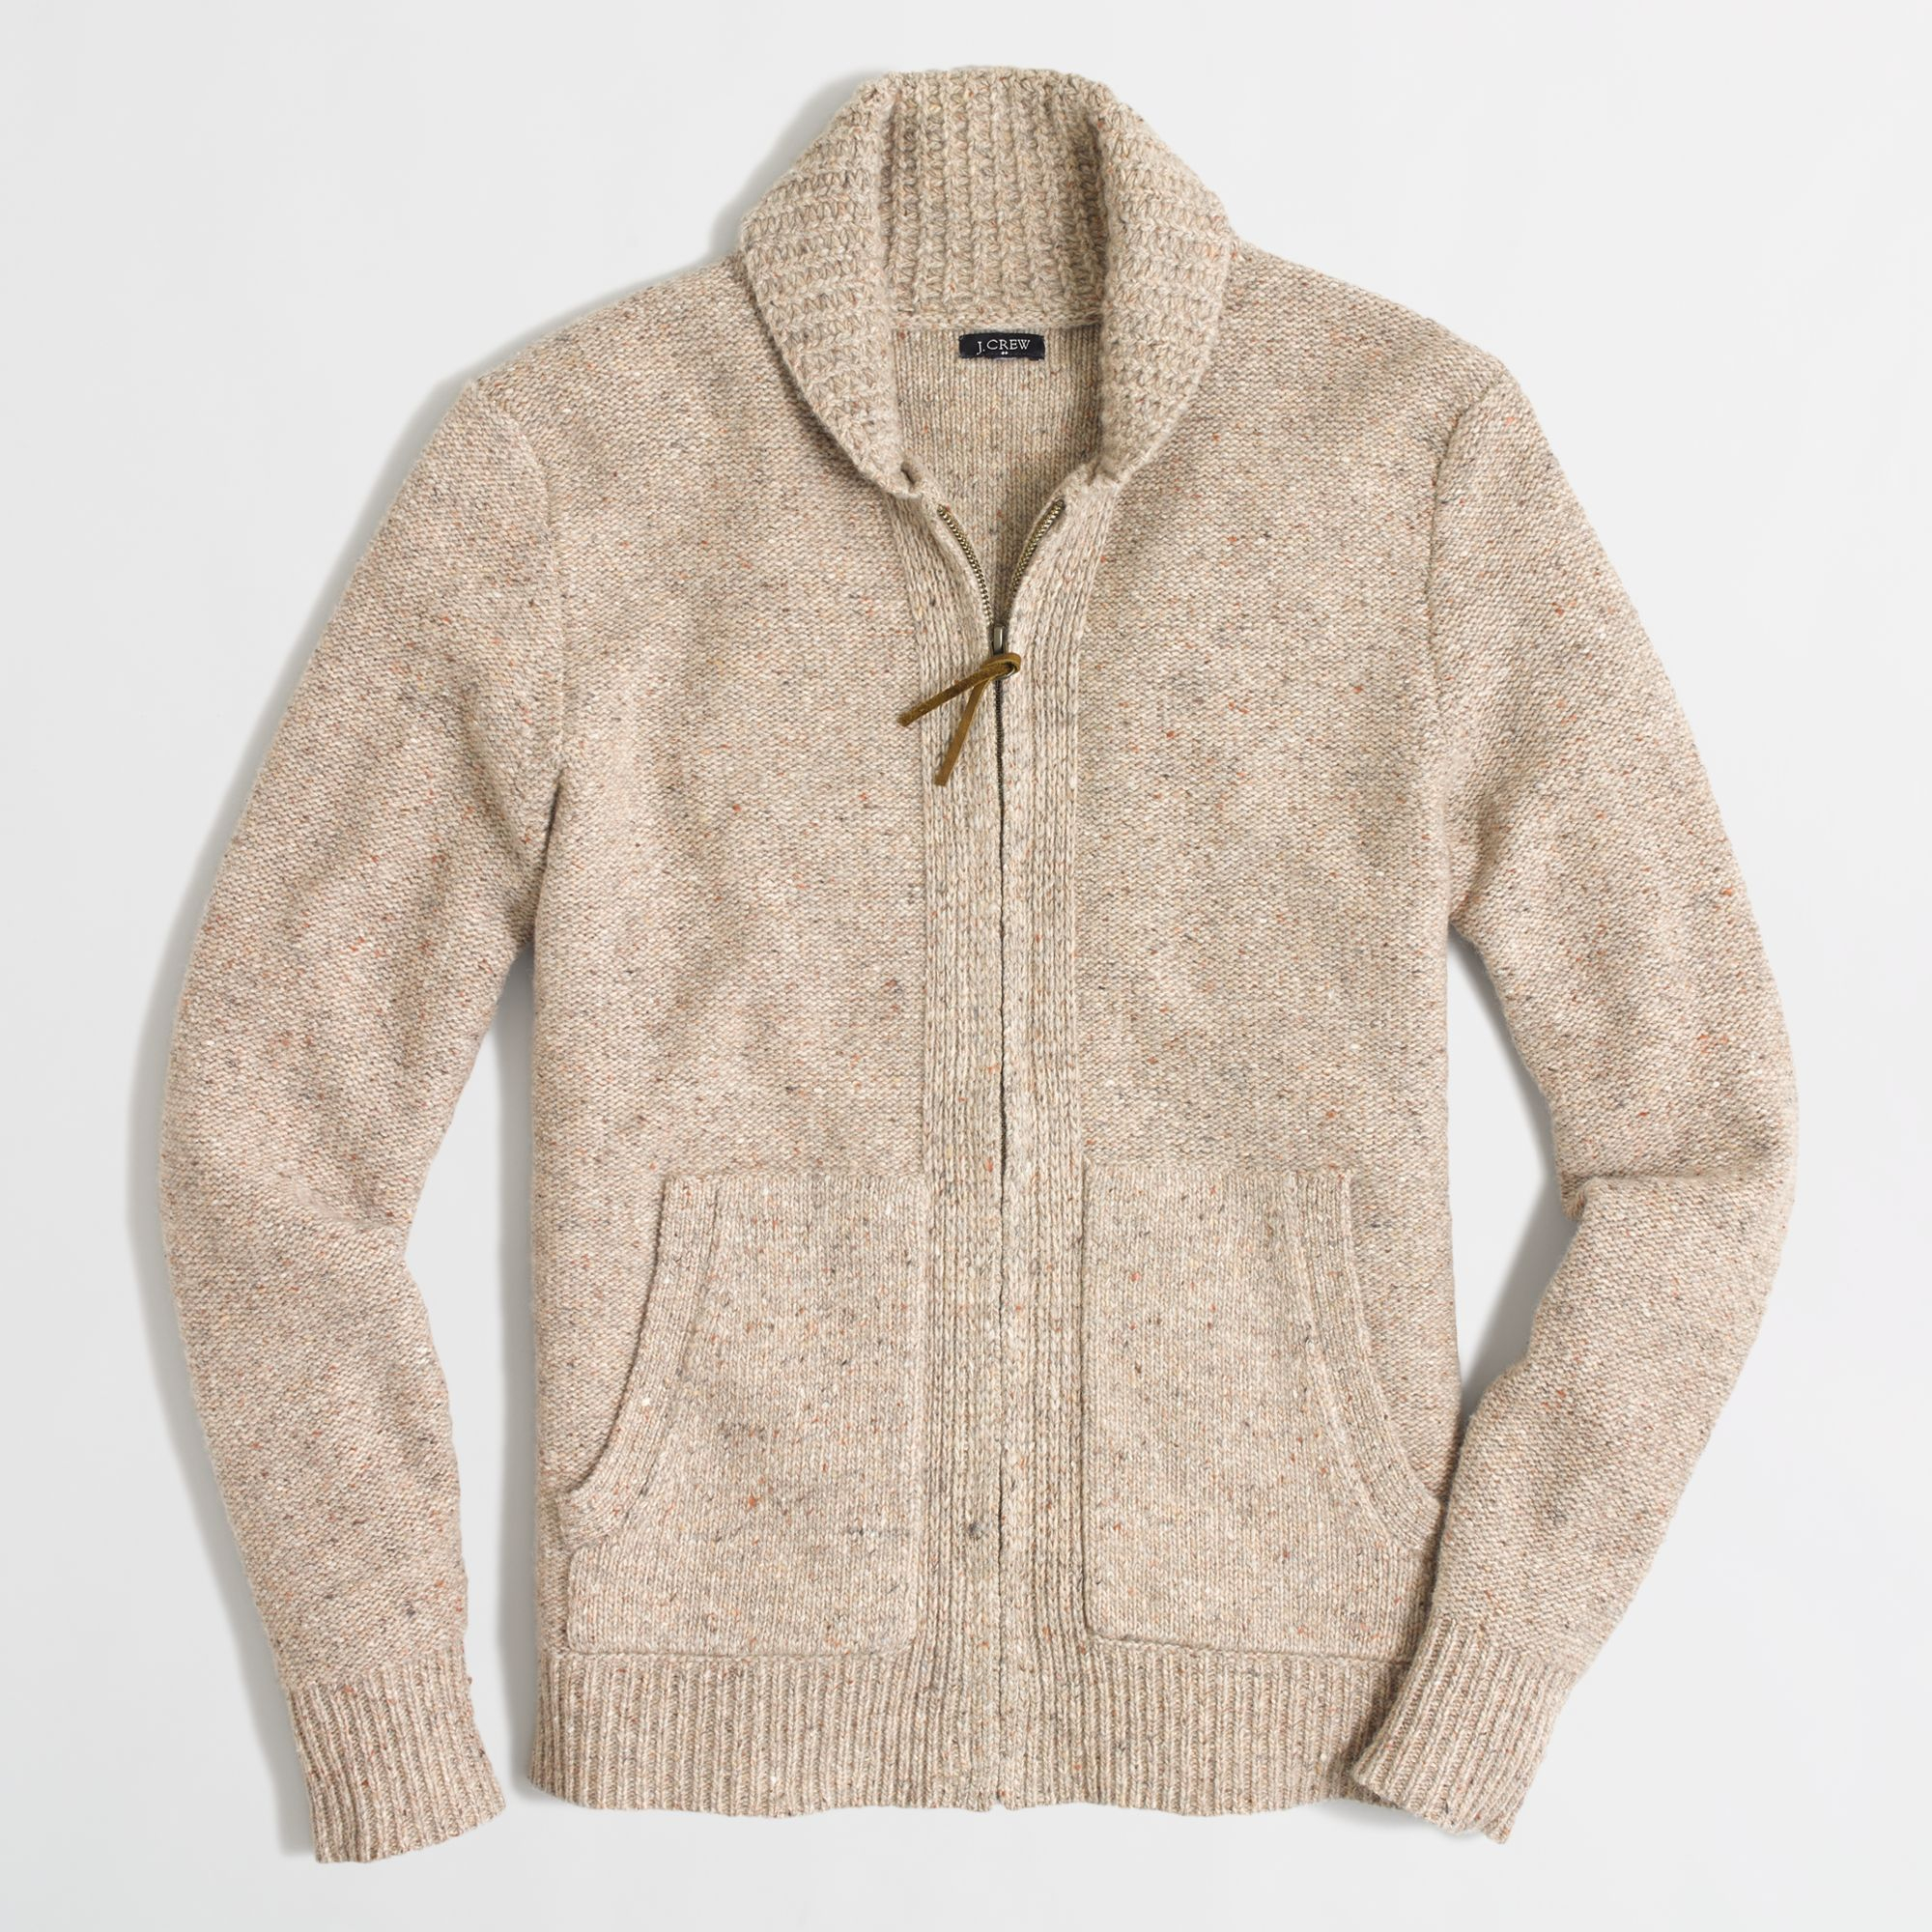 Jcrew Factory Donegal Full Zip Cardigan In Natural For Men Lyst